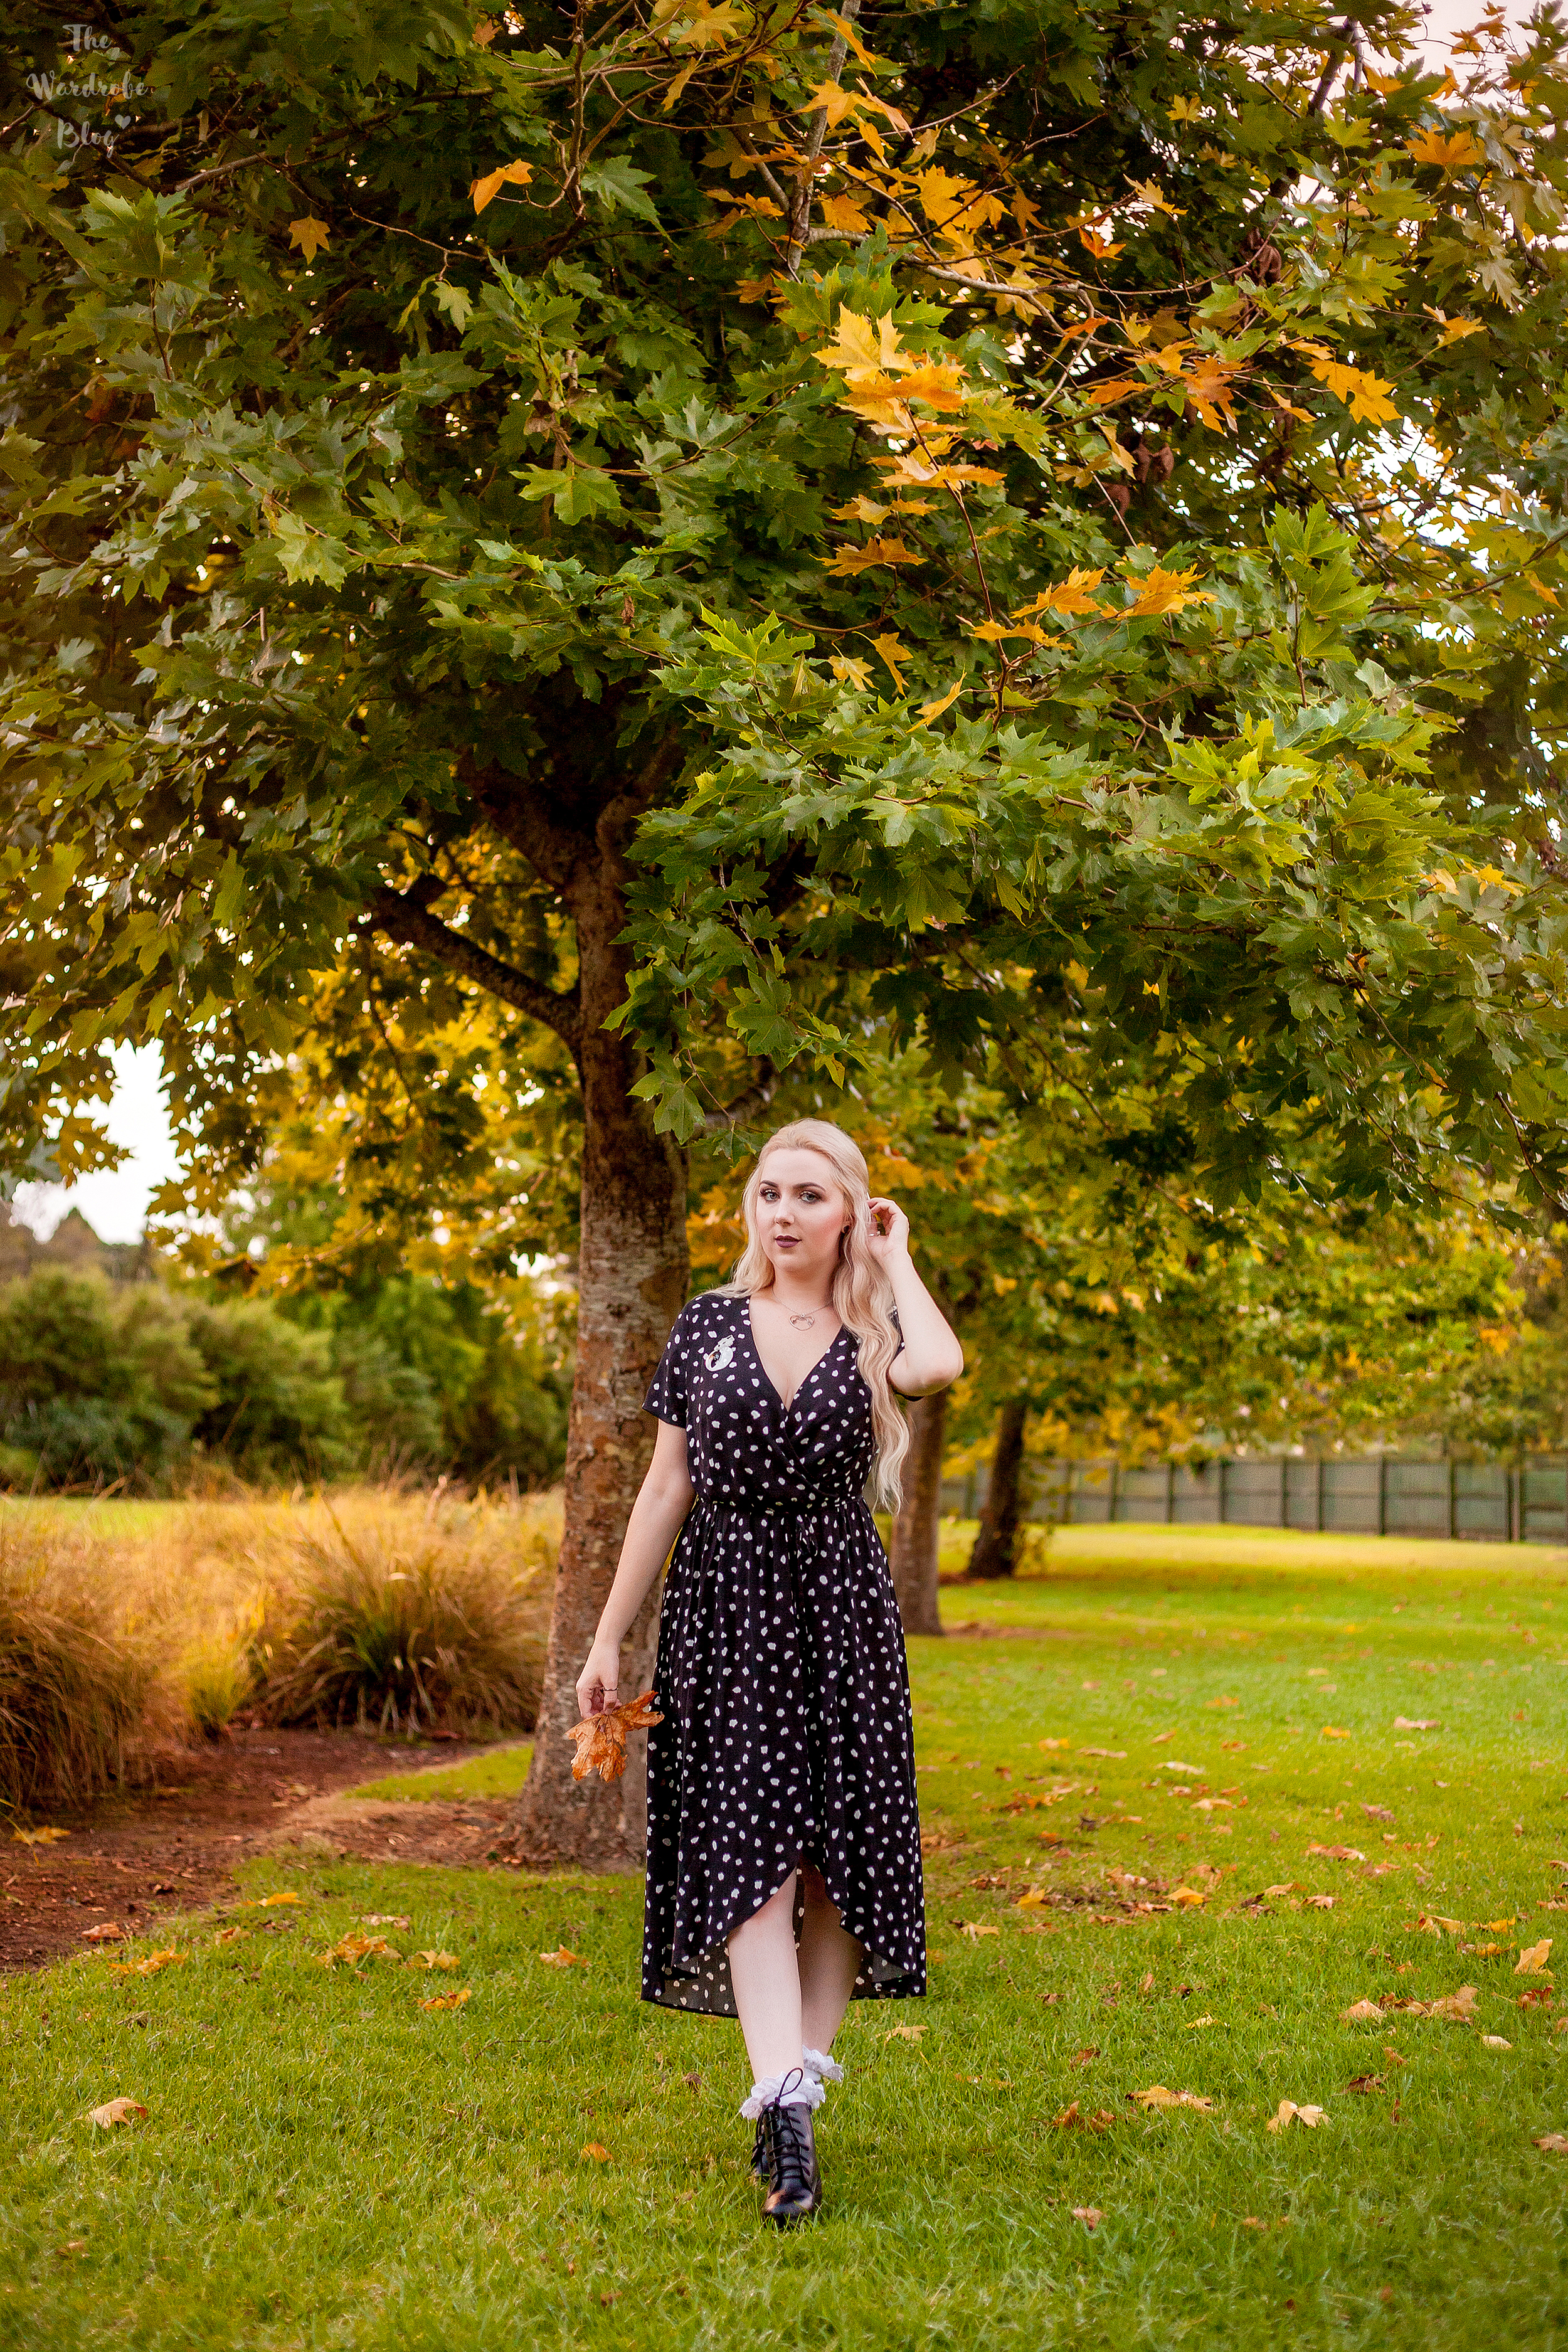 Autumn-Light-Full-Body-Polka-Dot-Kmart